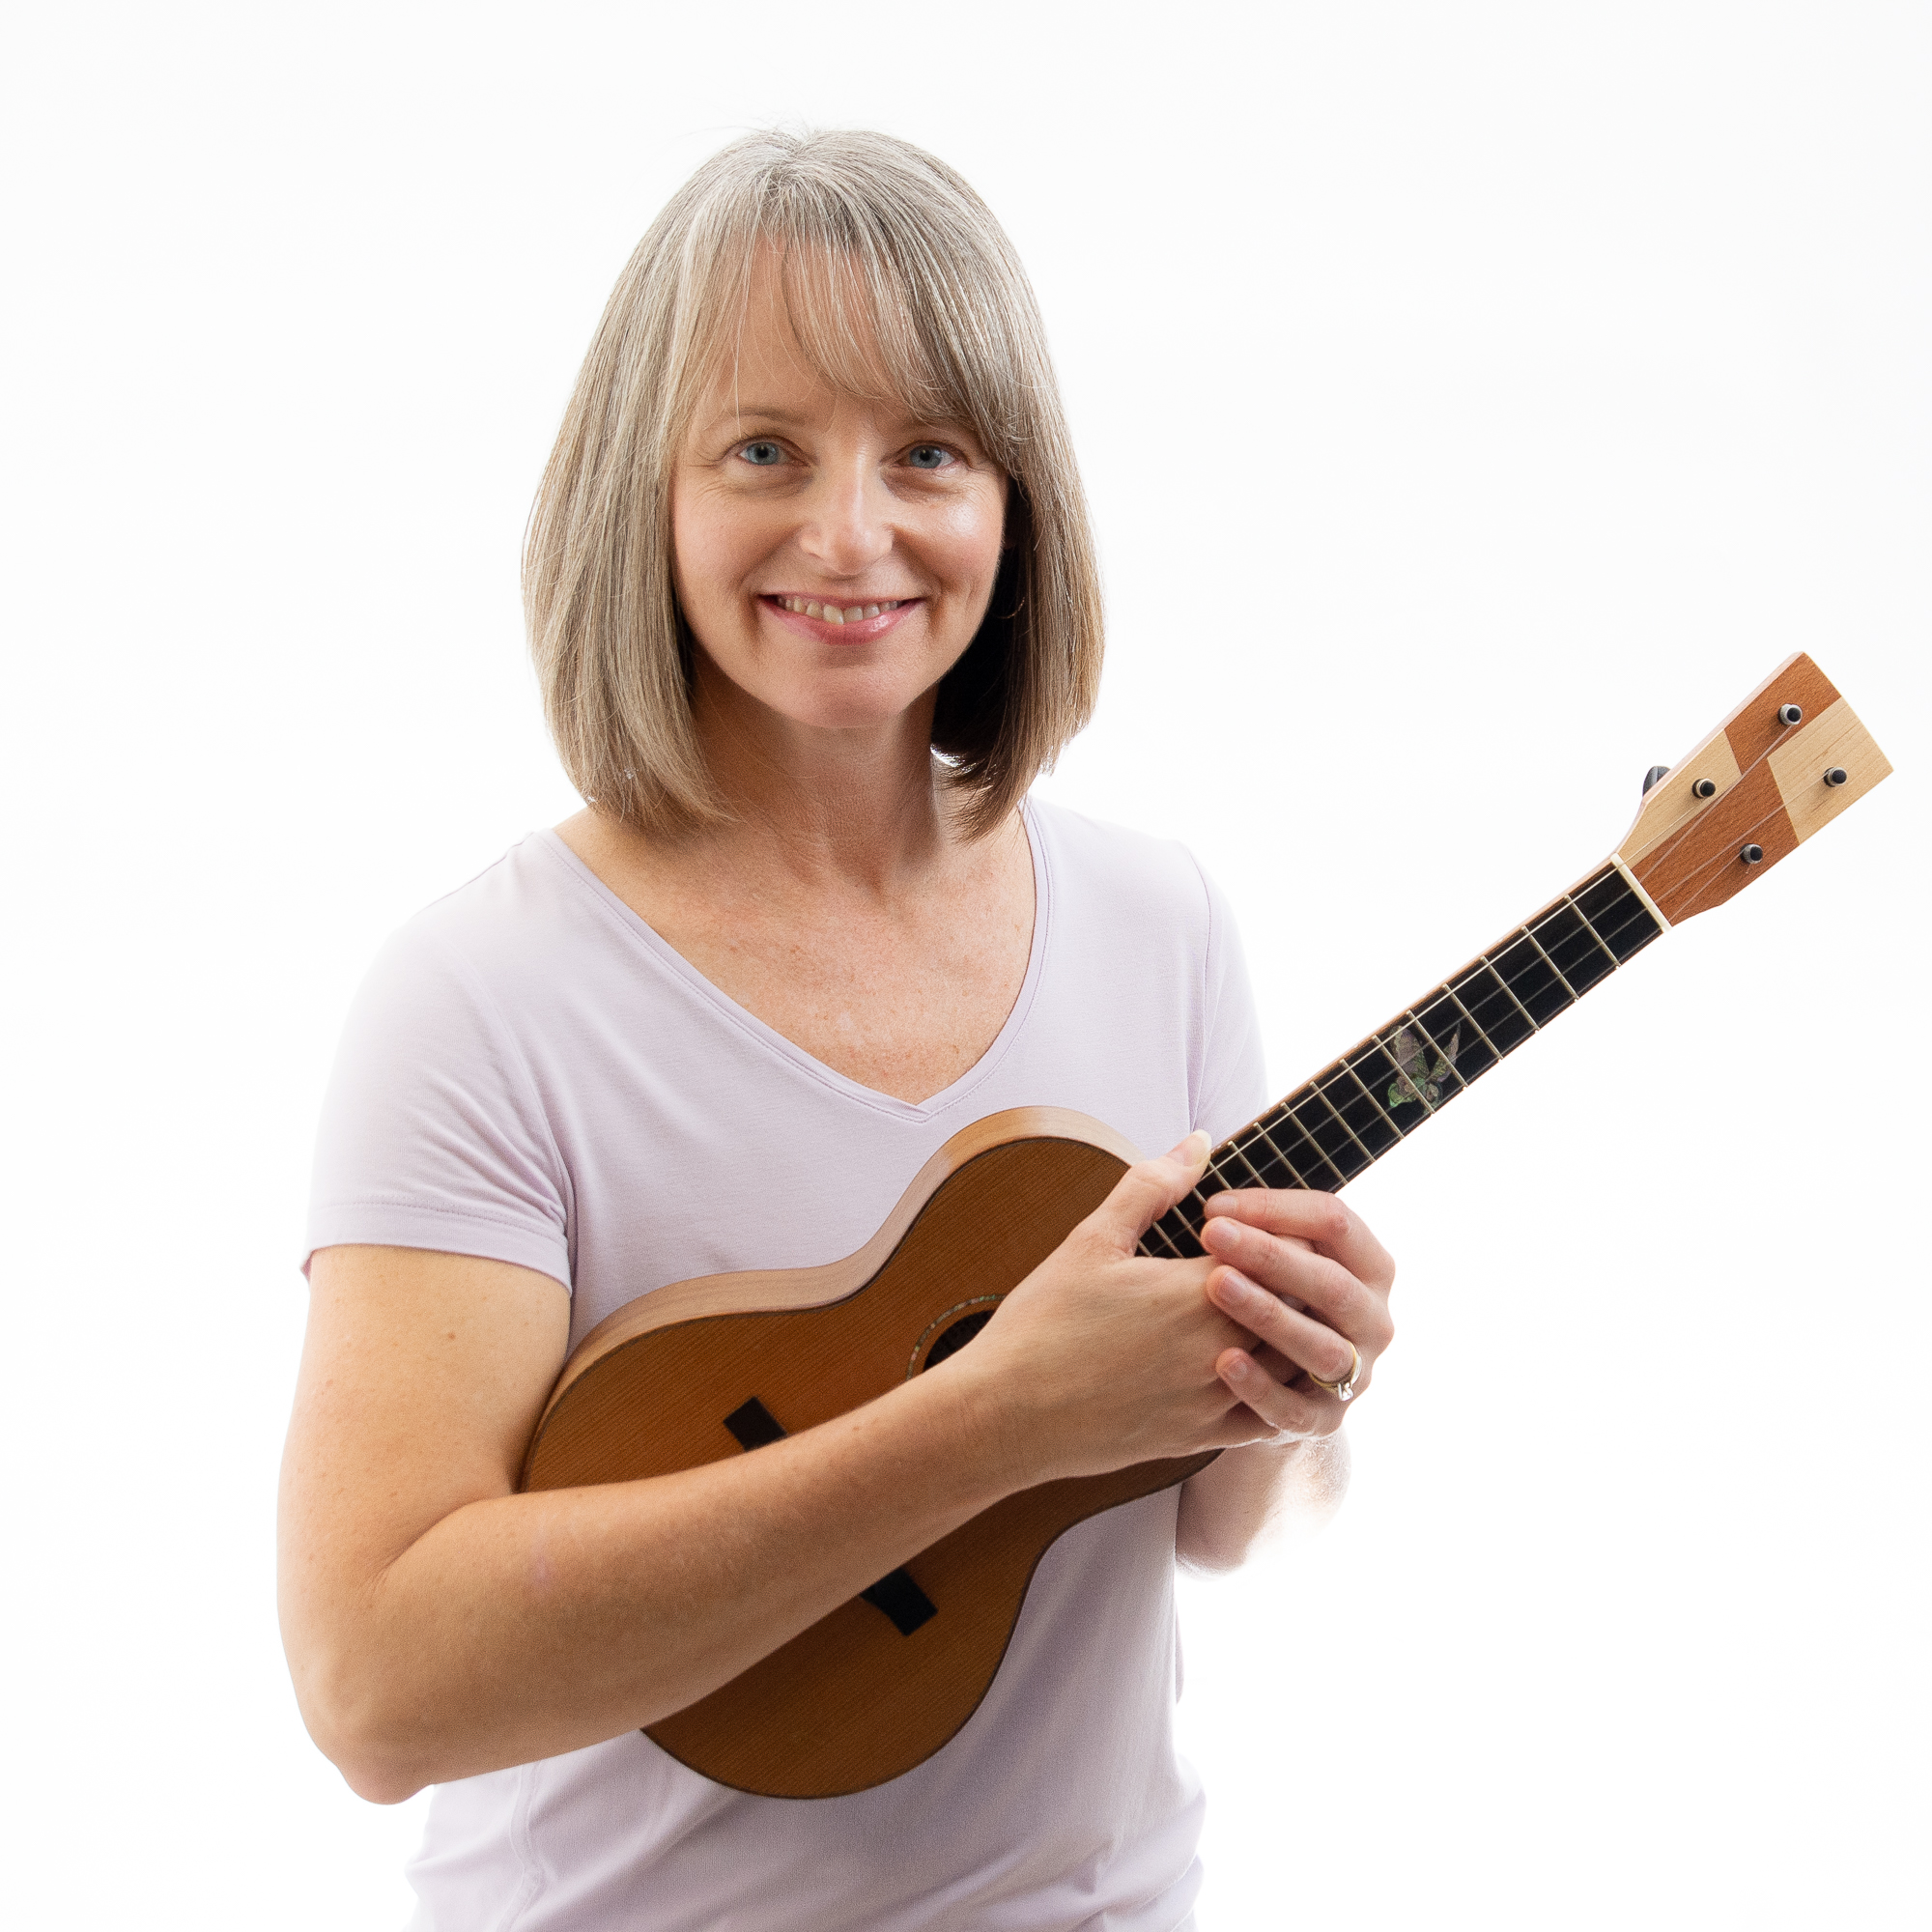 """I really began to understand music after I picked up the ukulele. It's all there, in your hands, and it's portable!"" - - Chantal LeBlanc"